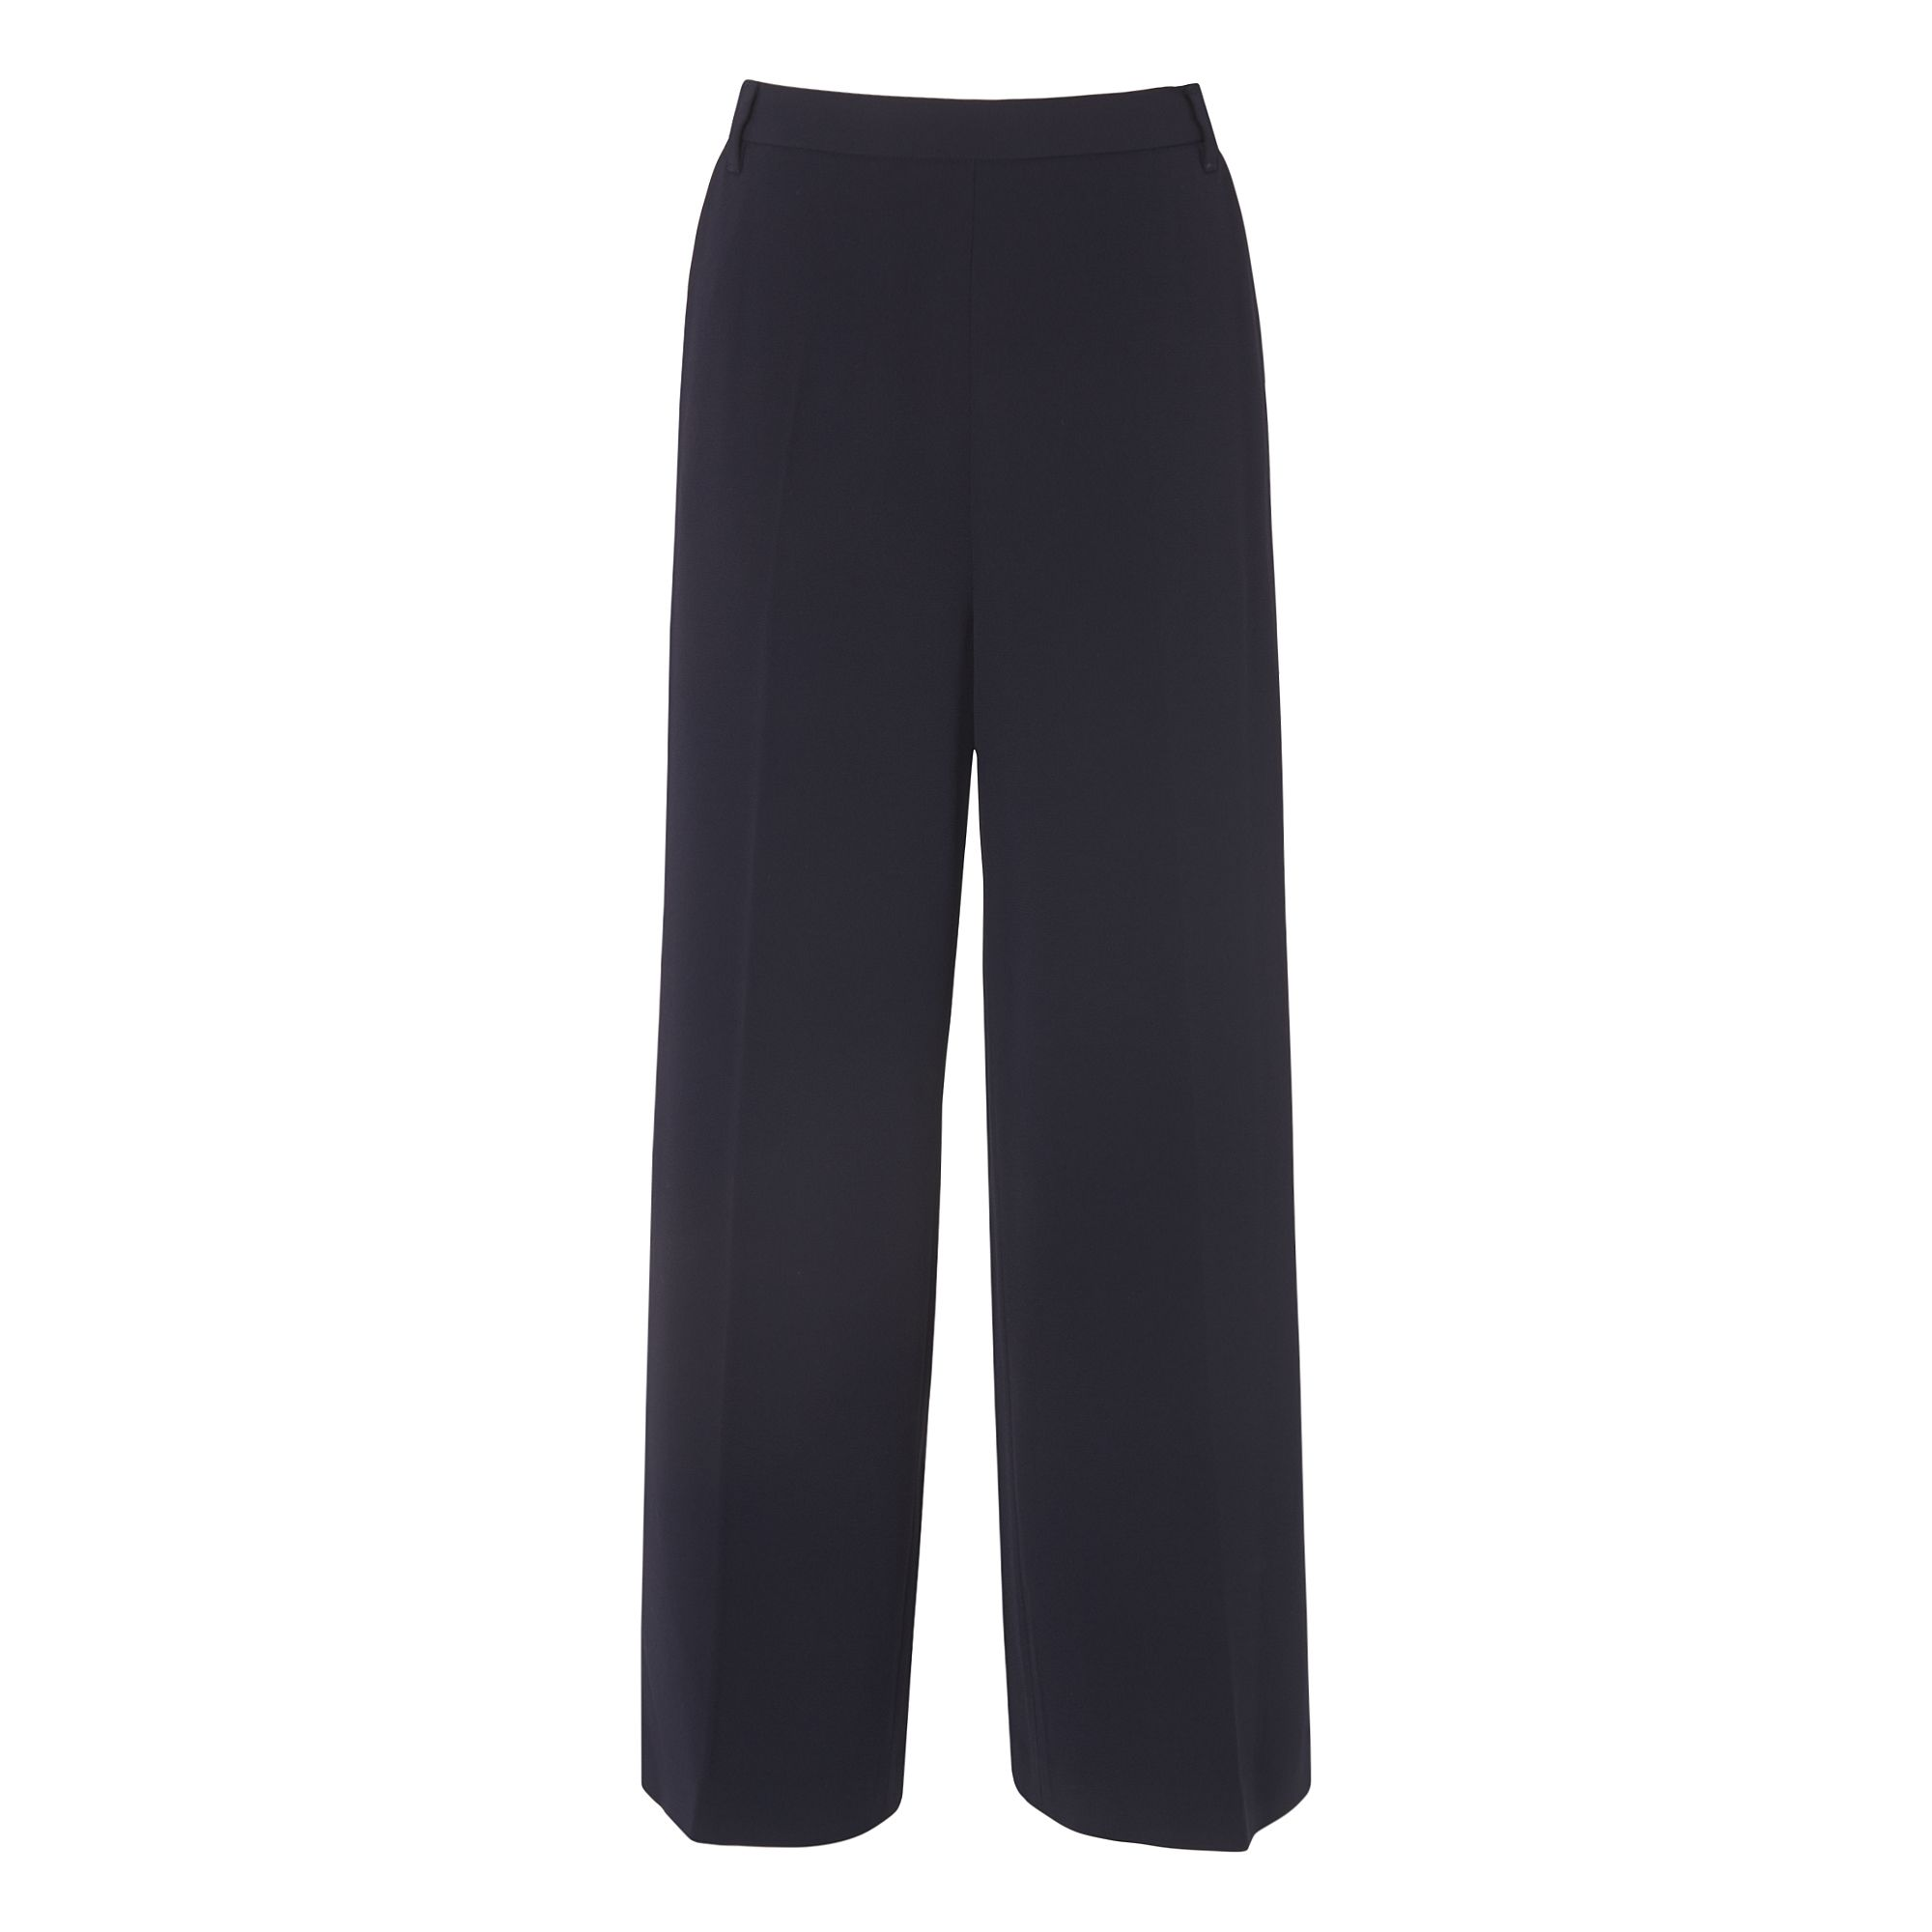 L.K. Bennett Greta Stright Leg Trousers, Blue